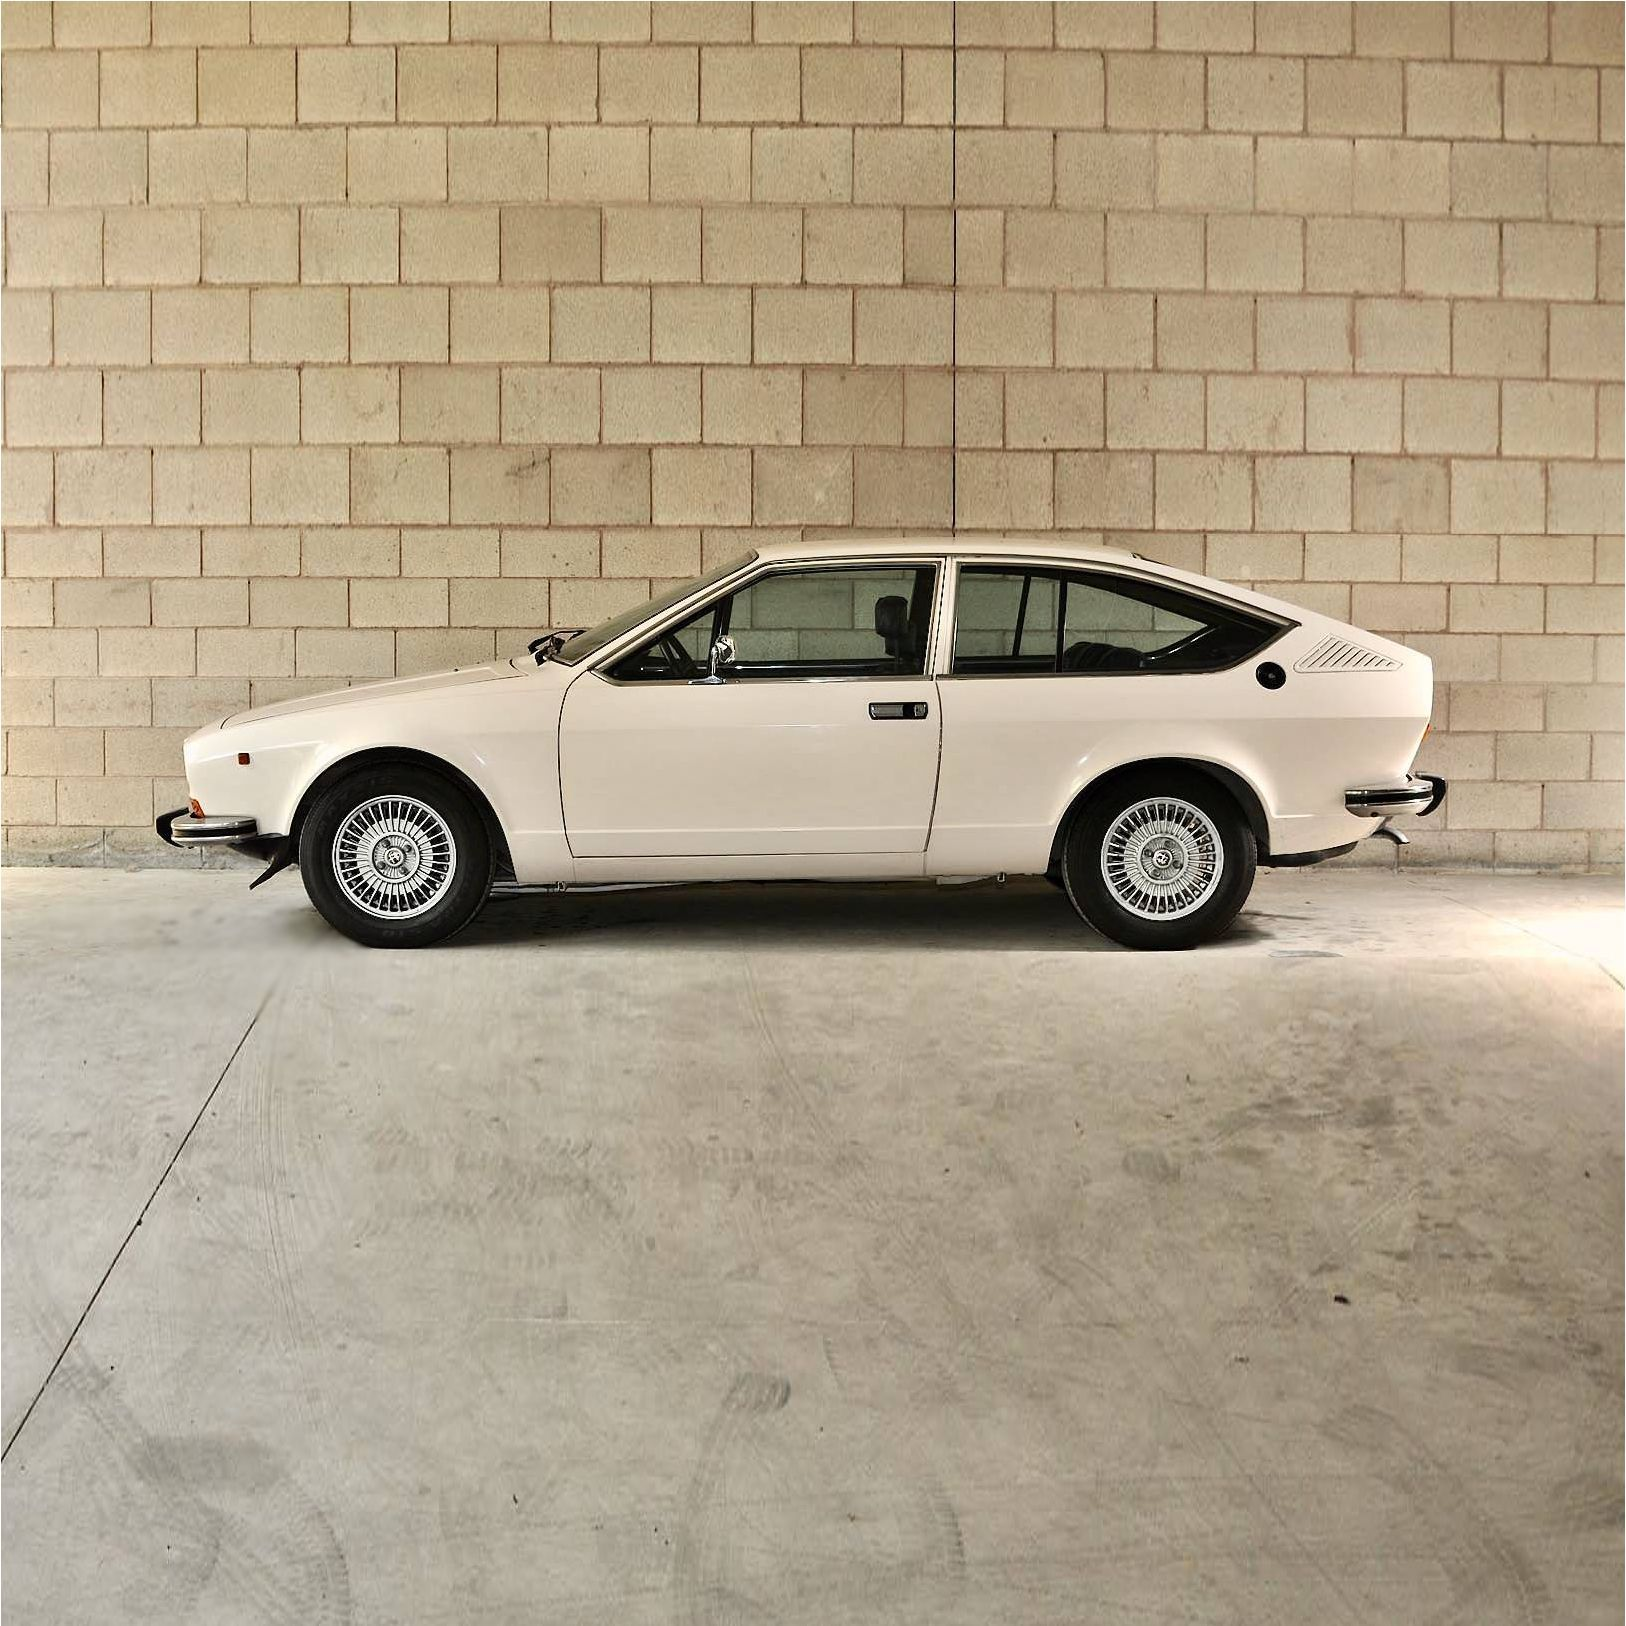 Authentic Classic Supplied By Vintage Car Masters A 1979 Alfa Romeo Alfetta Gt 1 6 Powered By A Reliable 1 6 Liter 4 Cylinder Engine T Alfa Romeo Romeo Coupe